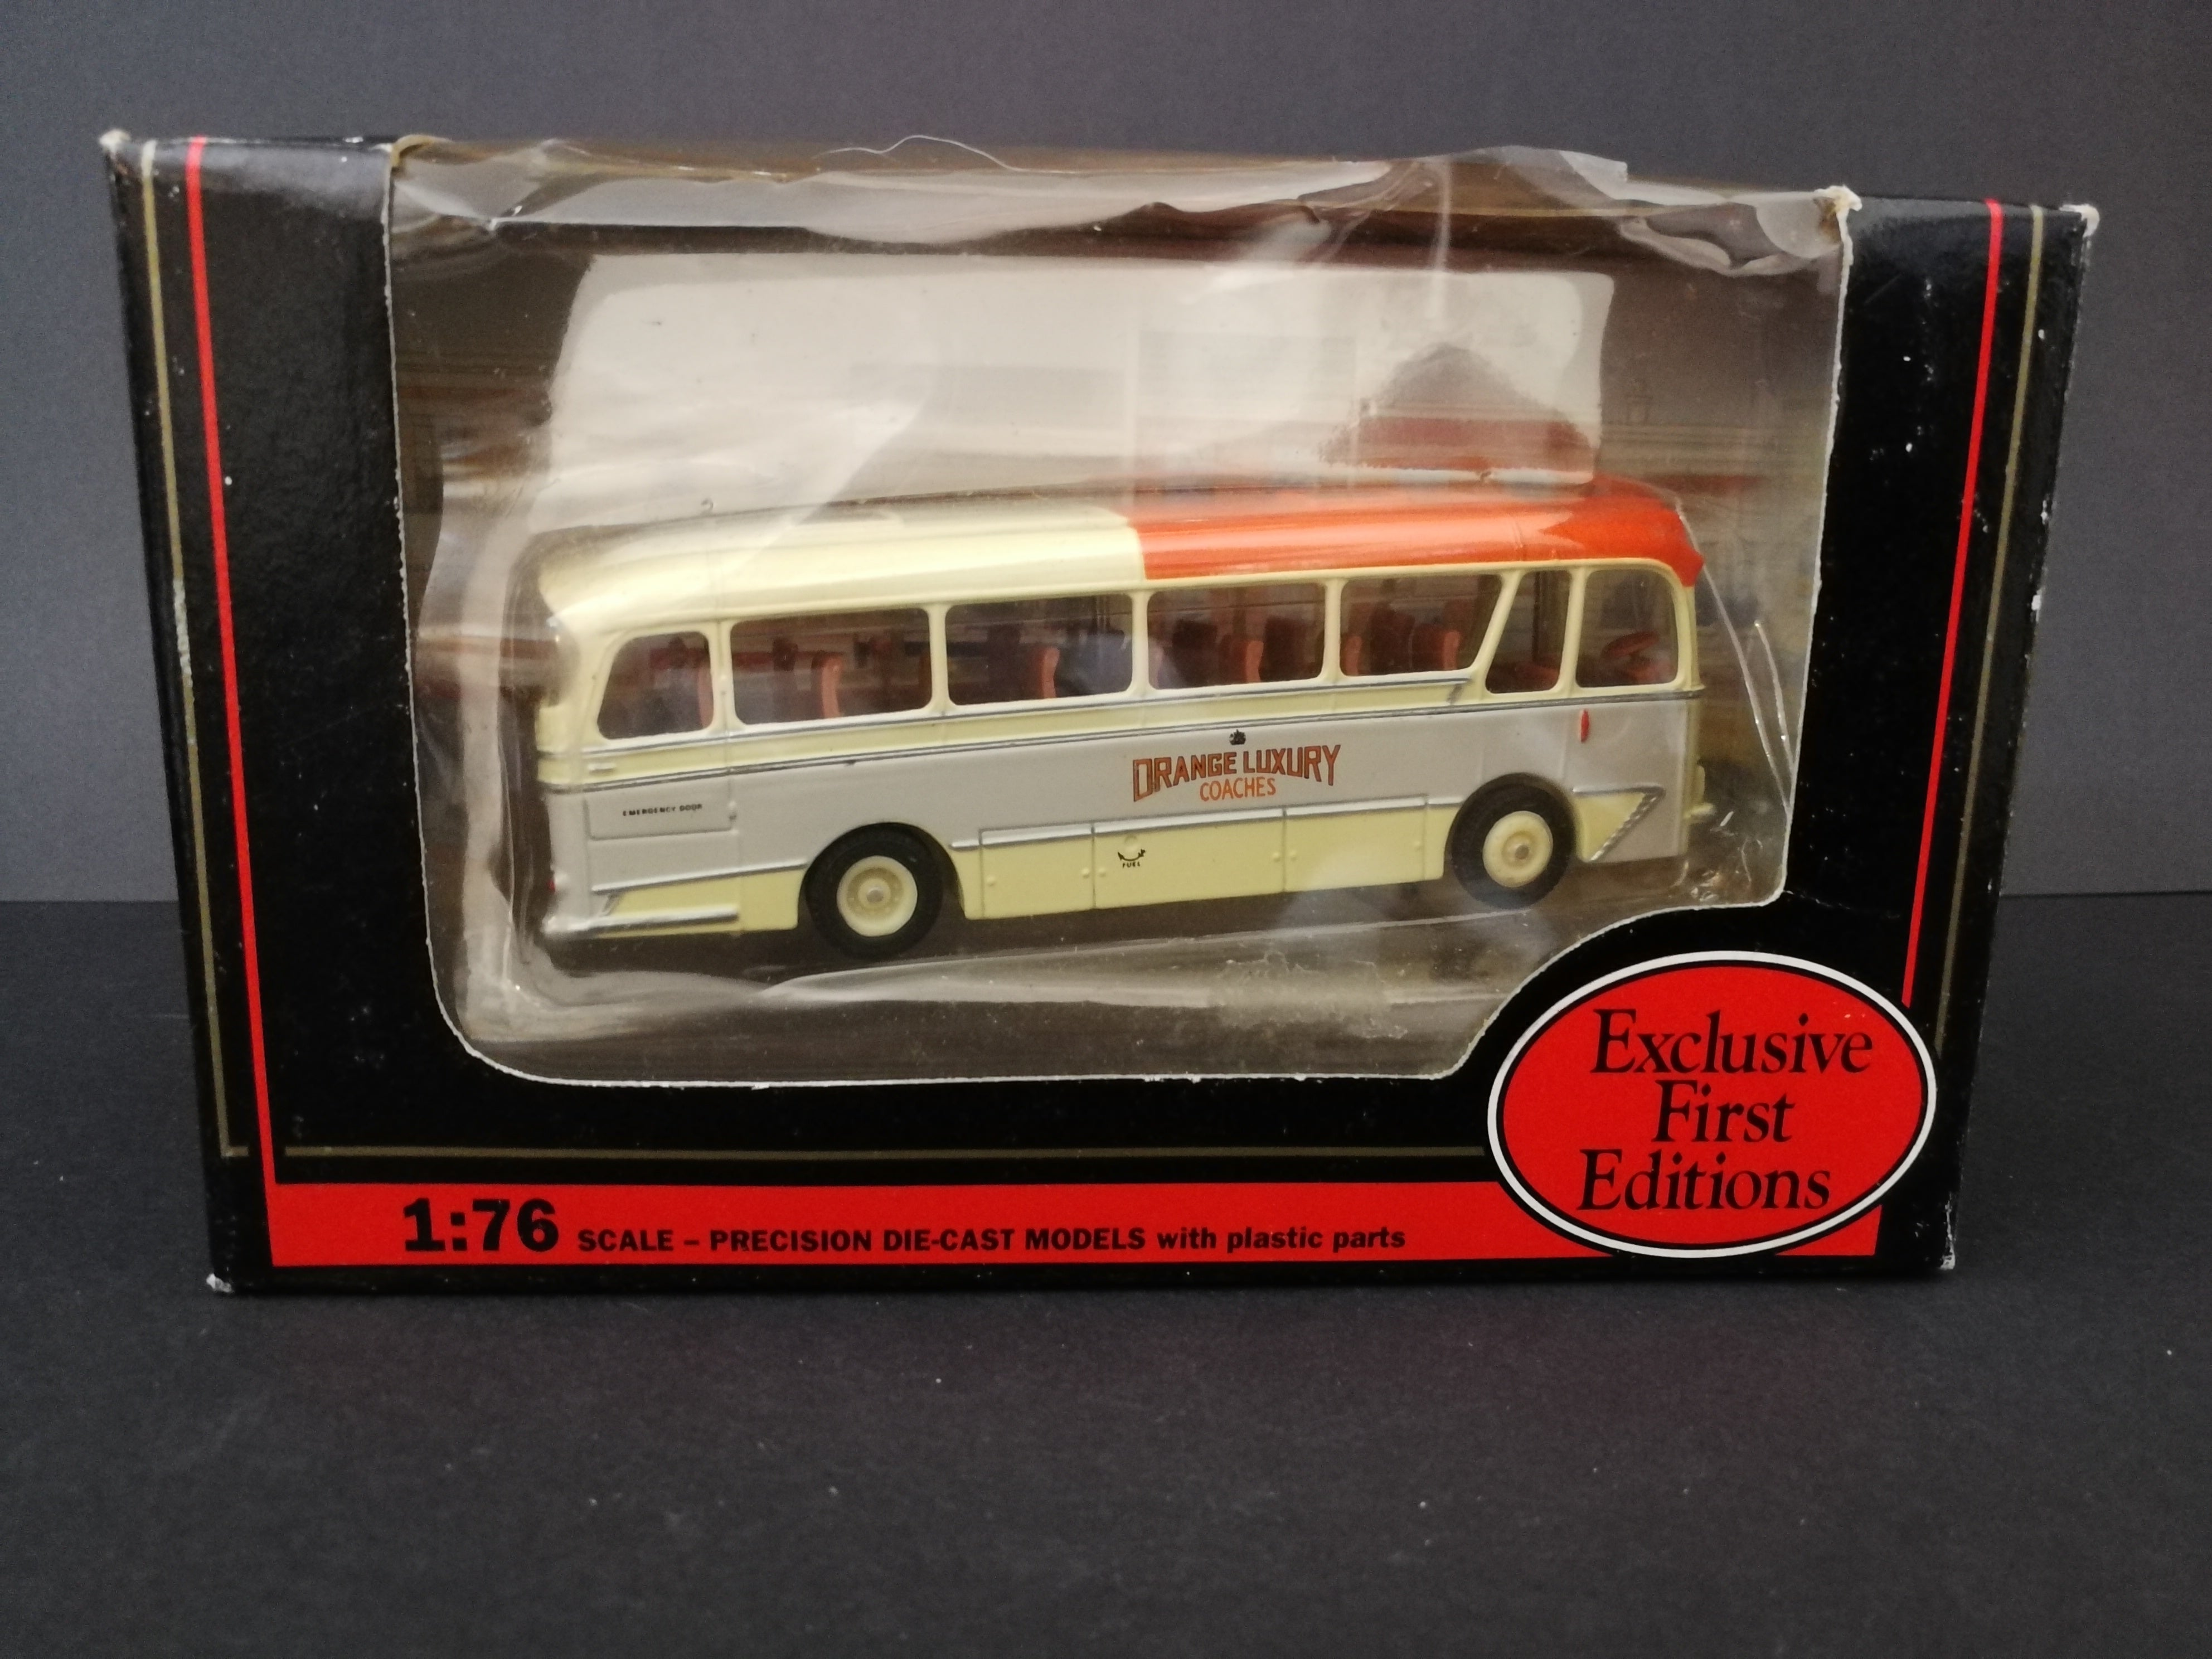 Exclusive First Editions Cavalier Coach, scale 1:76, color grey and red, comes with box, side view